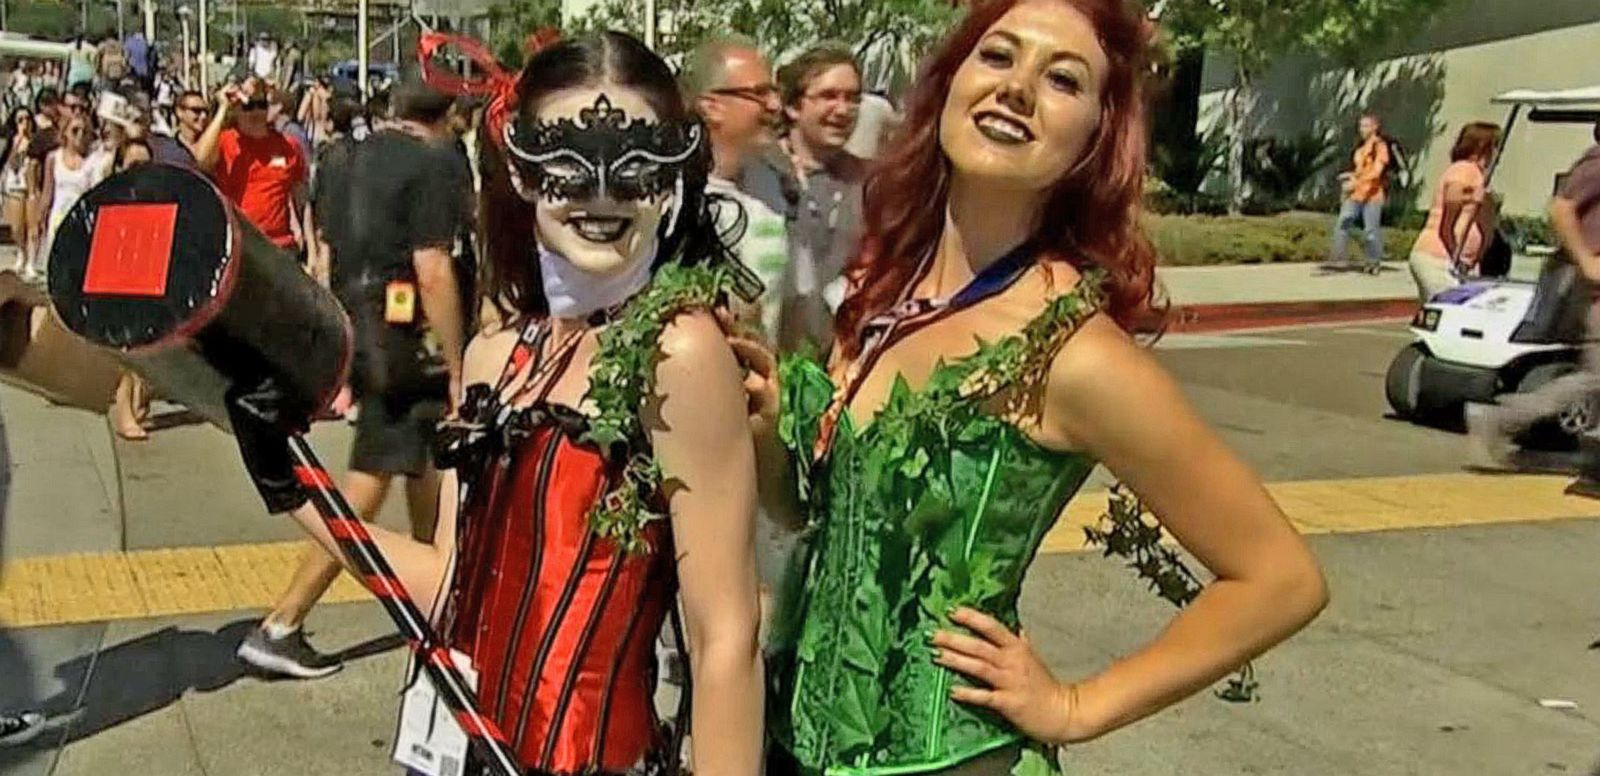 VIDEO: San Diego Comic-Con Celebrates Fierce Women